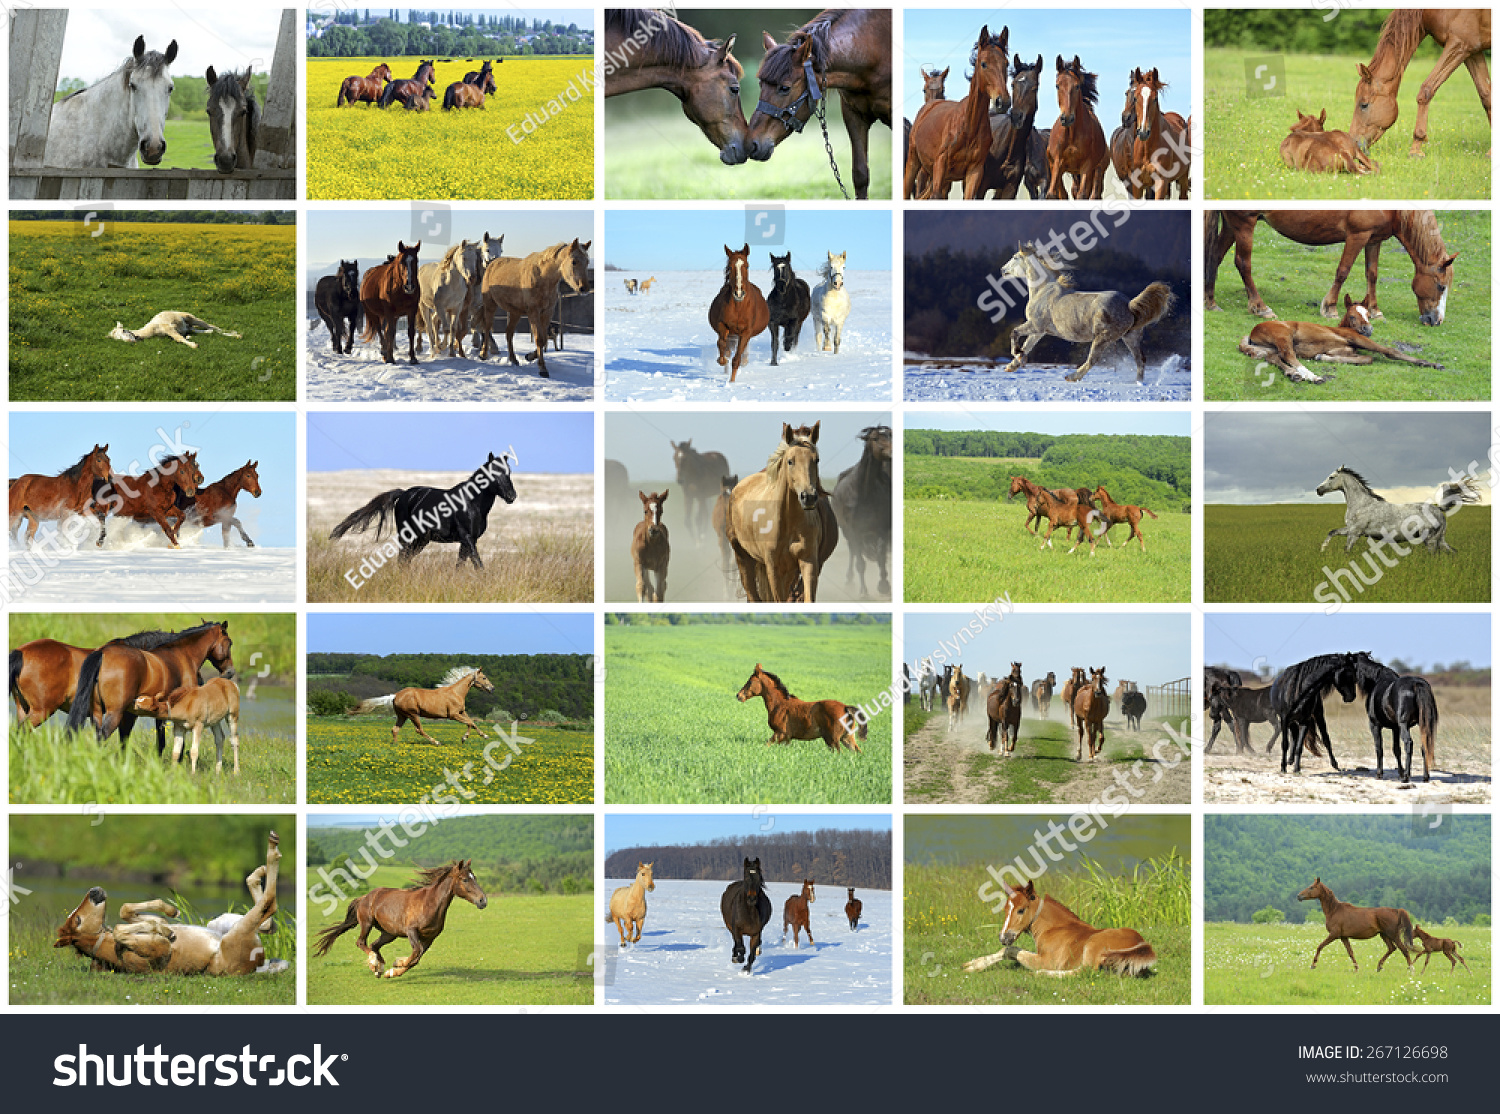 Collage Beautiful Horses Wild Stock Photo Edit Now 267126698